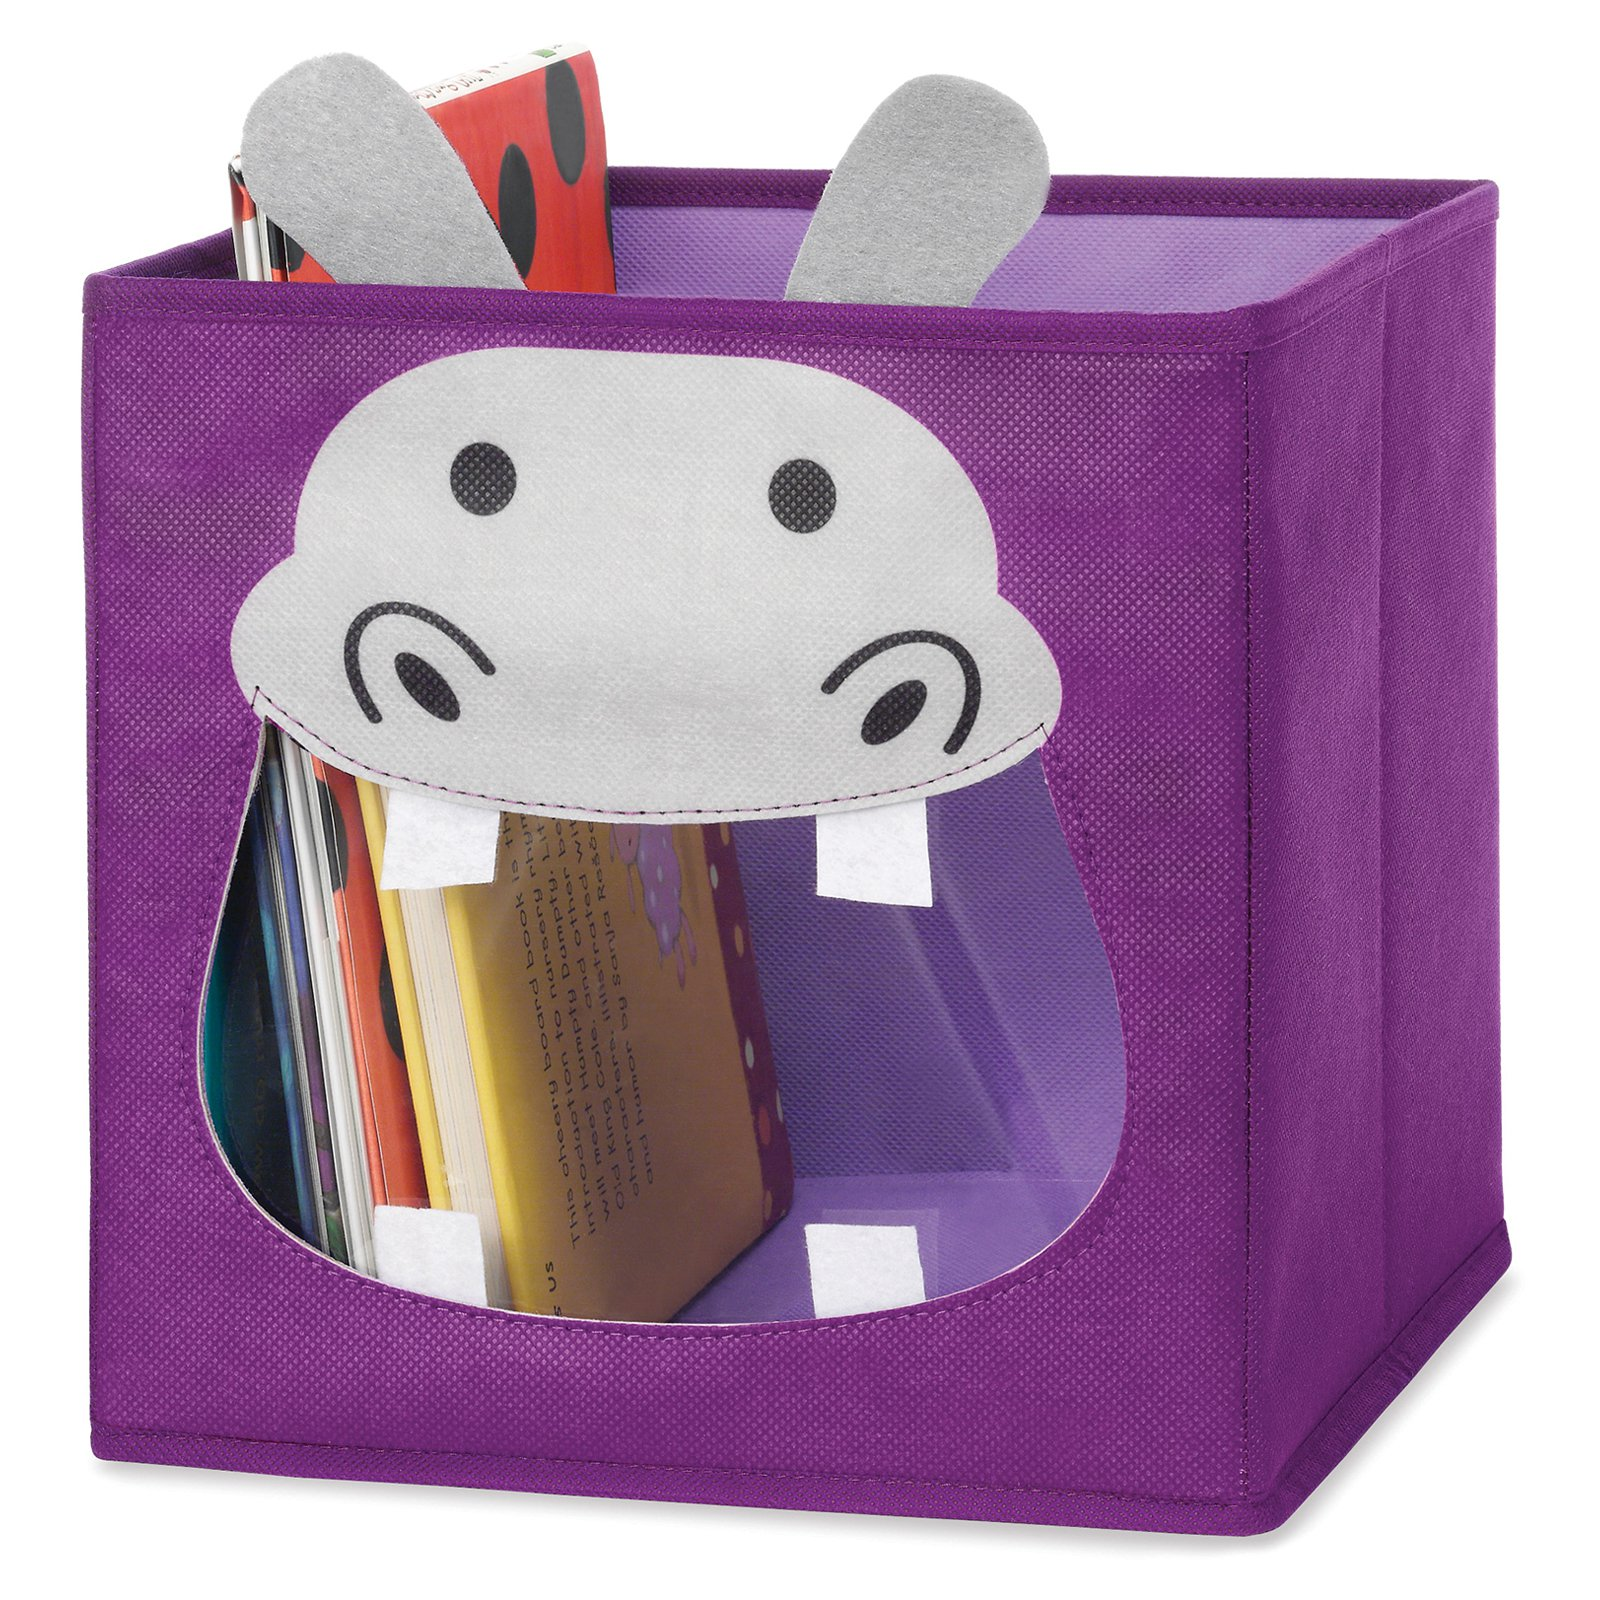 Whitmor 6256-4925-HIPPO Purple Hippo Collapsible Storage Cube